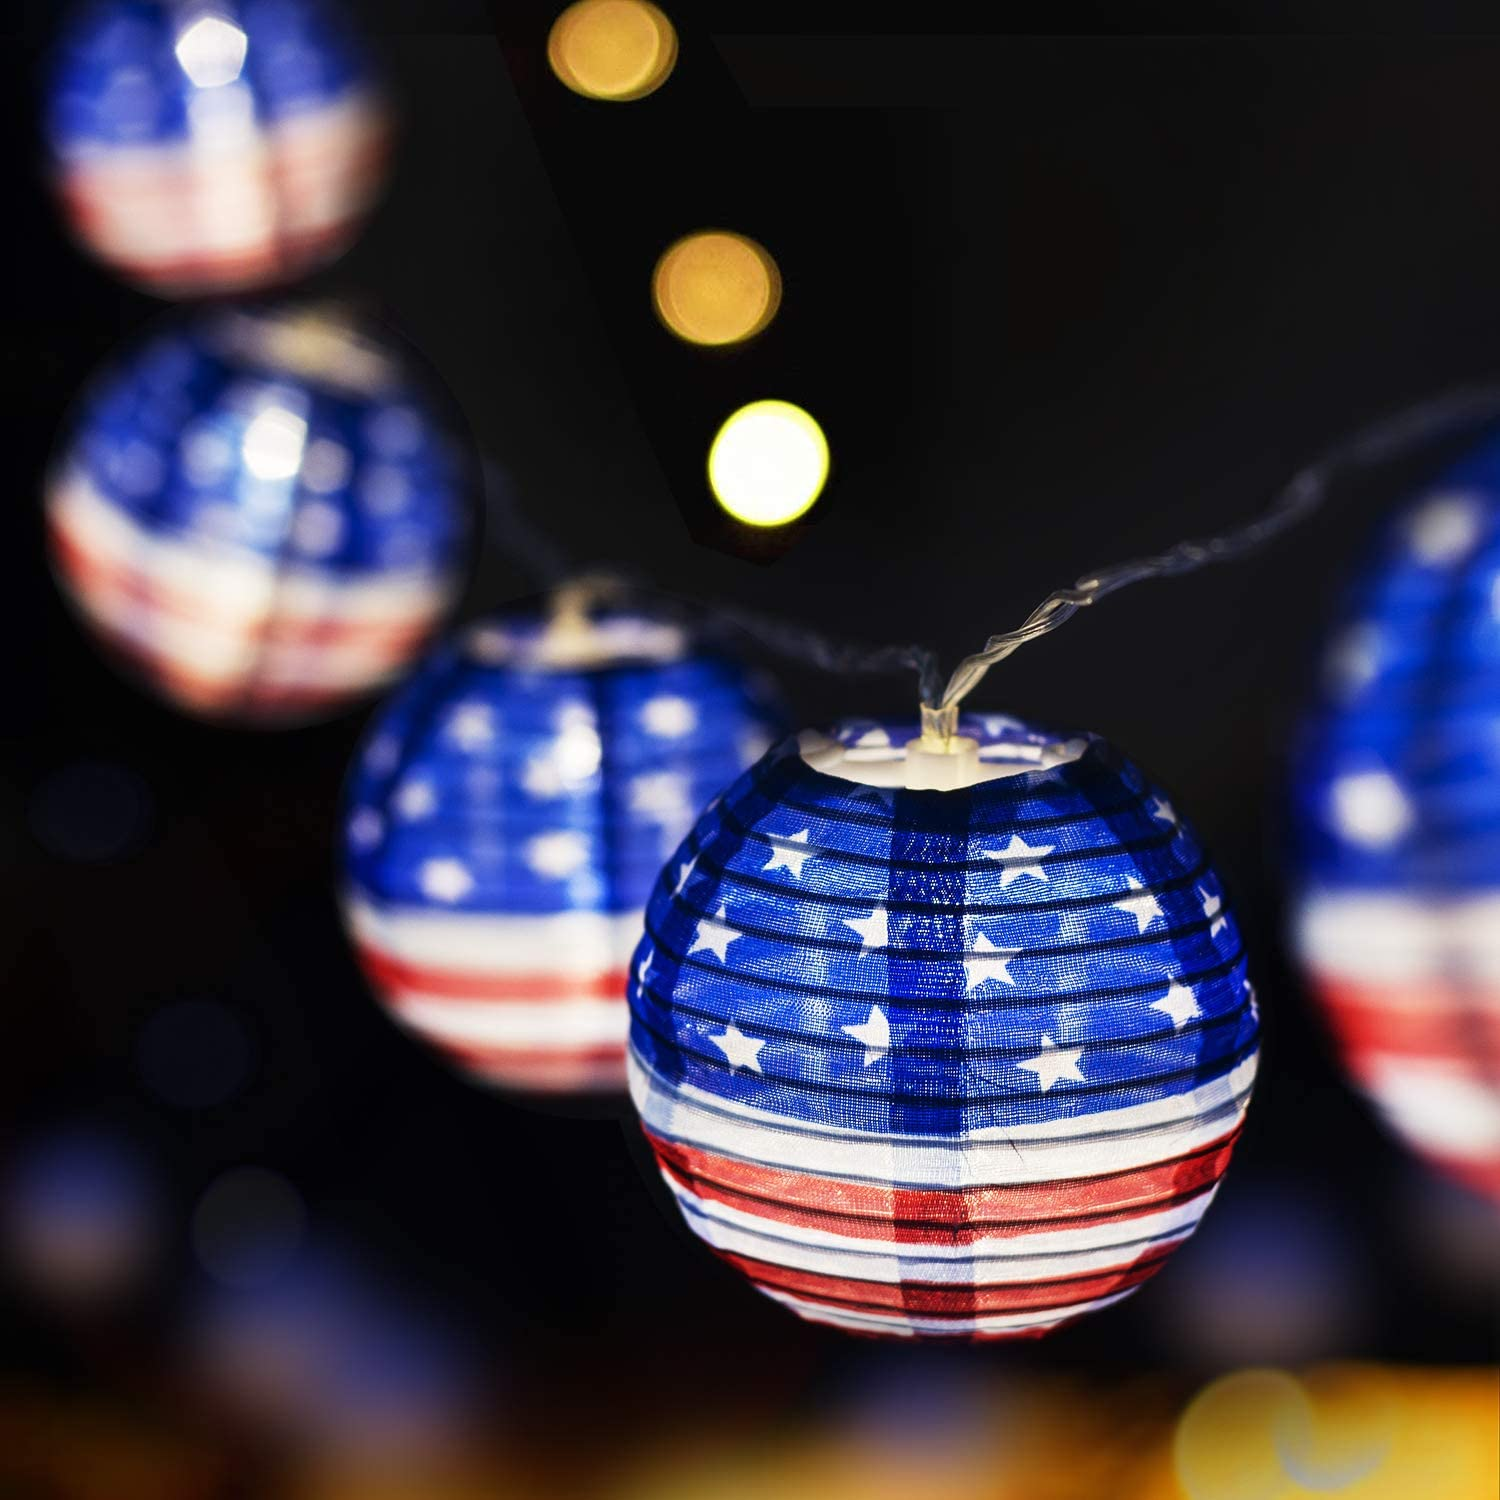 Makion 4th of July Patriotic Decorations String Lights, 2.5M/8.2FT 10 LED Red White and Blue USA Flag Fabric Lanterns décor for Home Garden Independence Day Party Decor Supplies (Battery Powered)